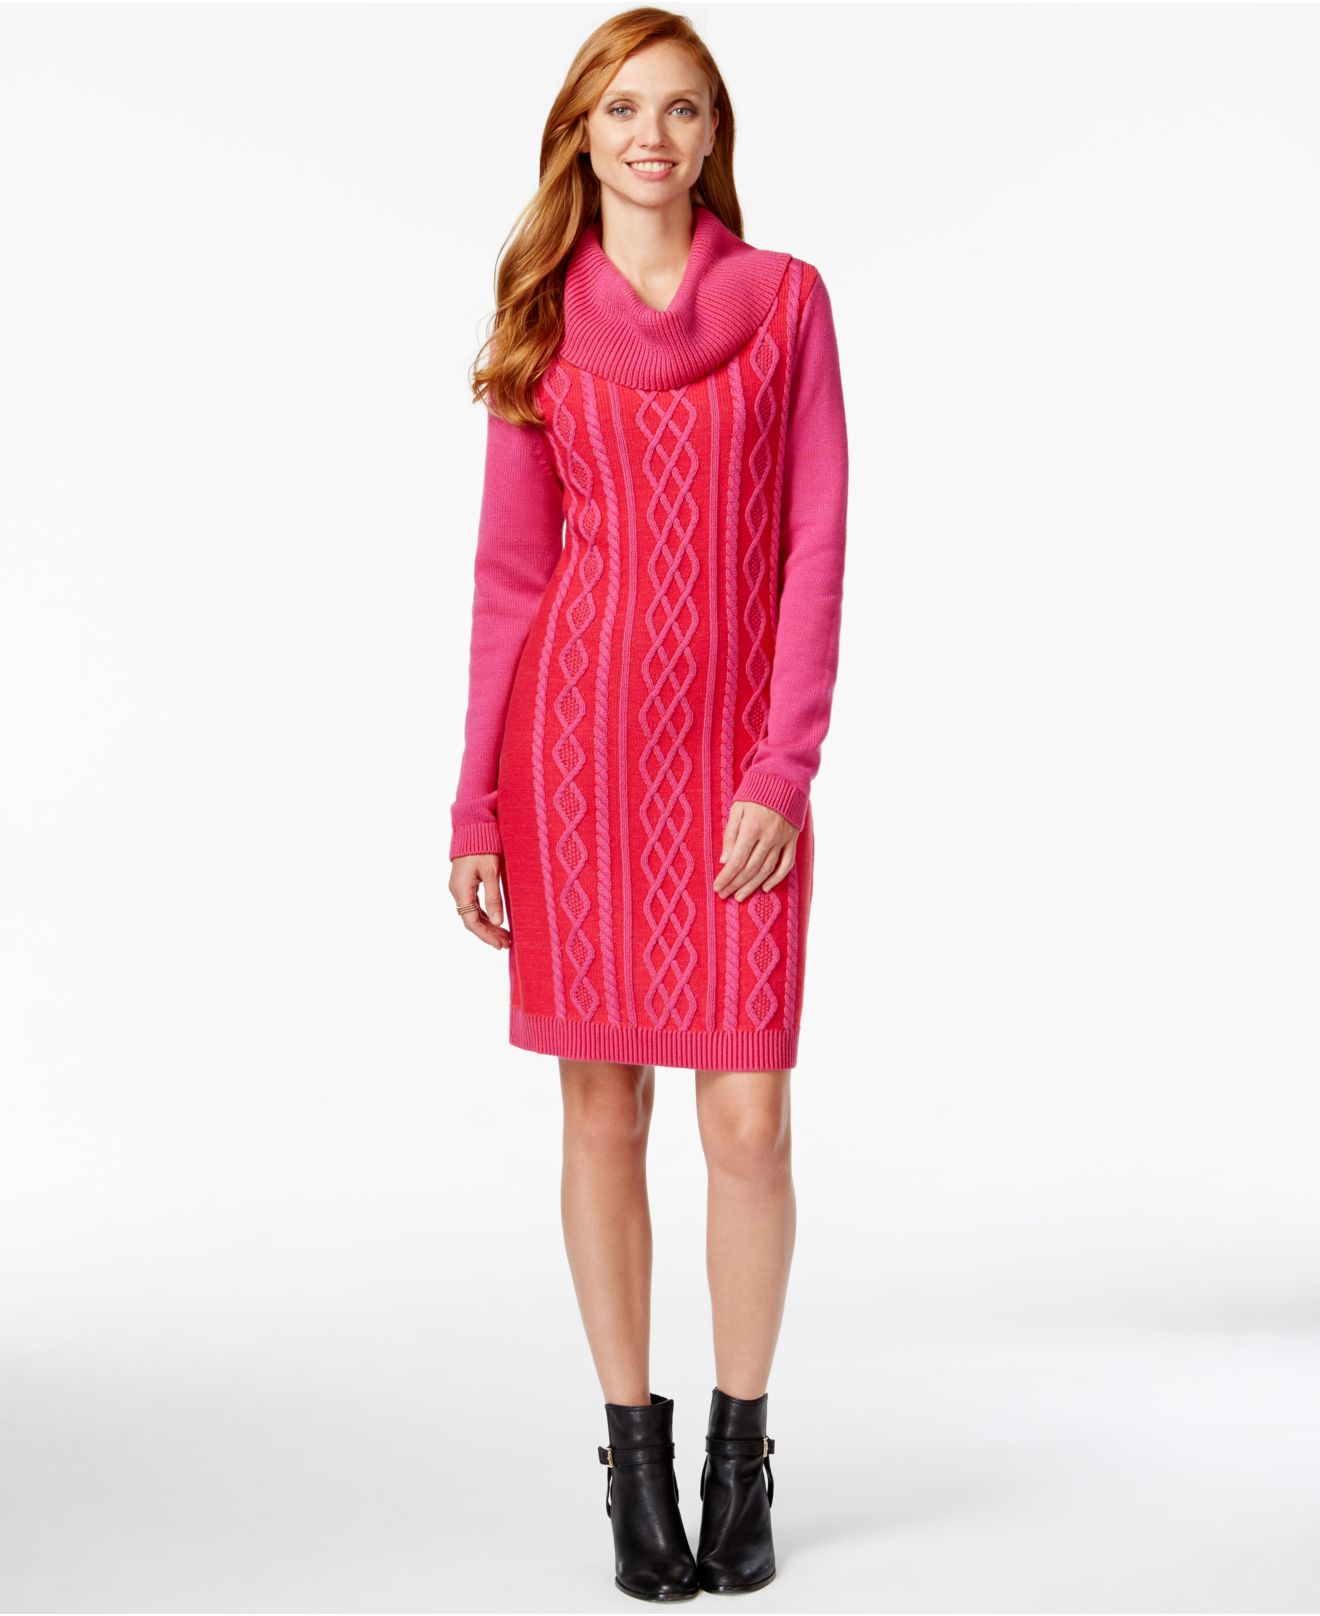 Tommy hilfiger Cowl-neck Cable-knit Sweater Dress in Pink | Lyst